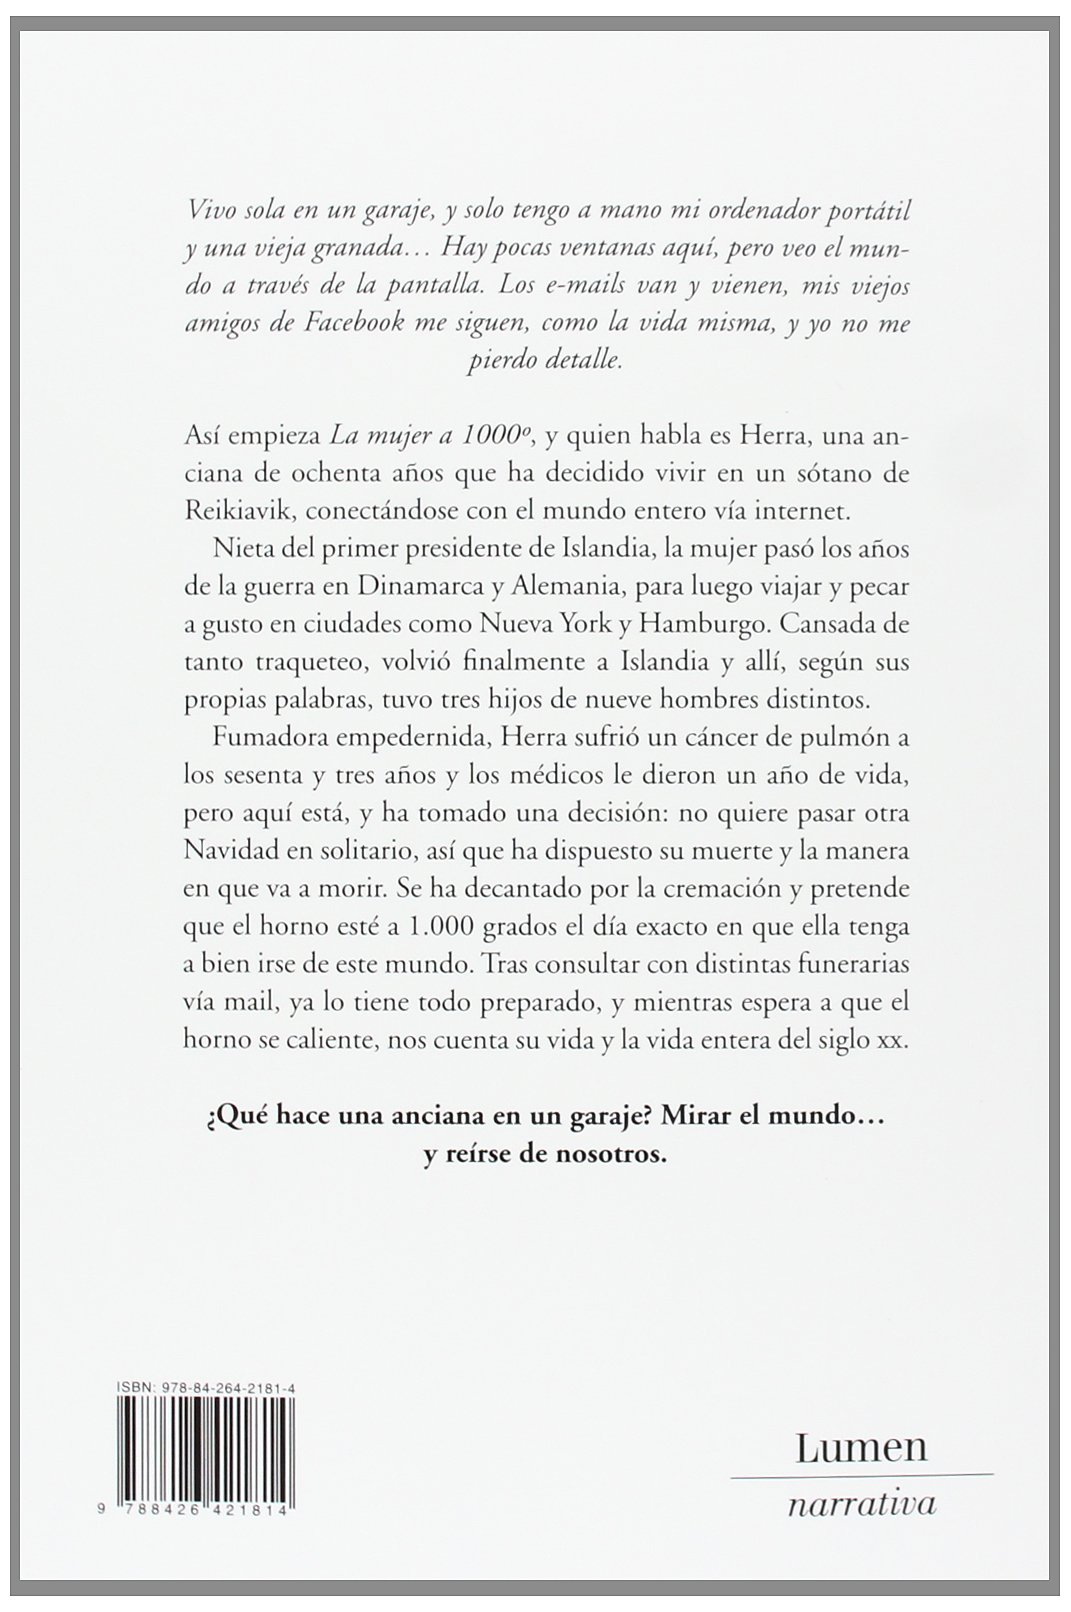 La mujer a 1000° / The Woman at 1000° (Spanish Edition): Hallgrimur Helgason: 9788426421814: Amazon.com: Books